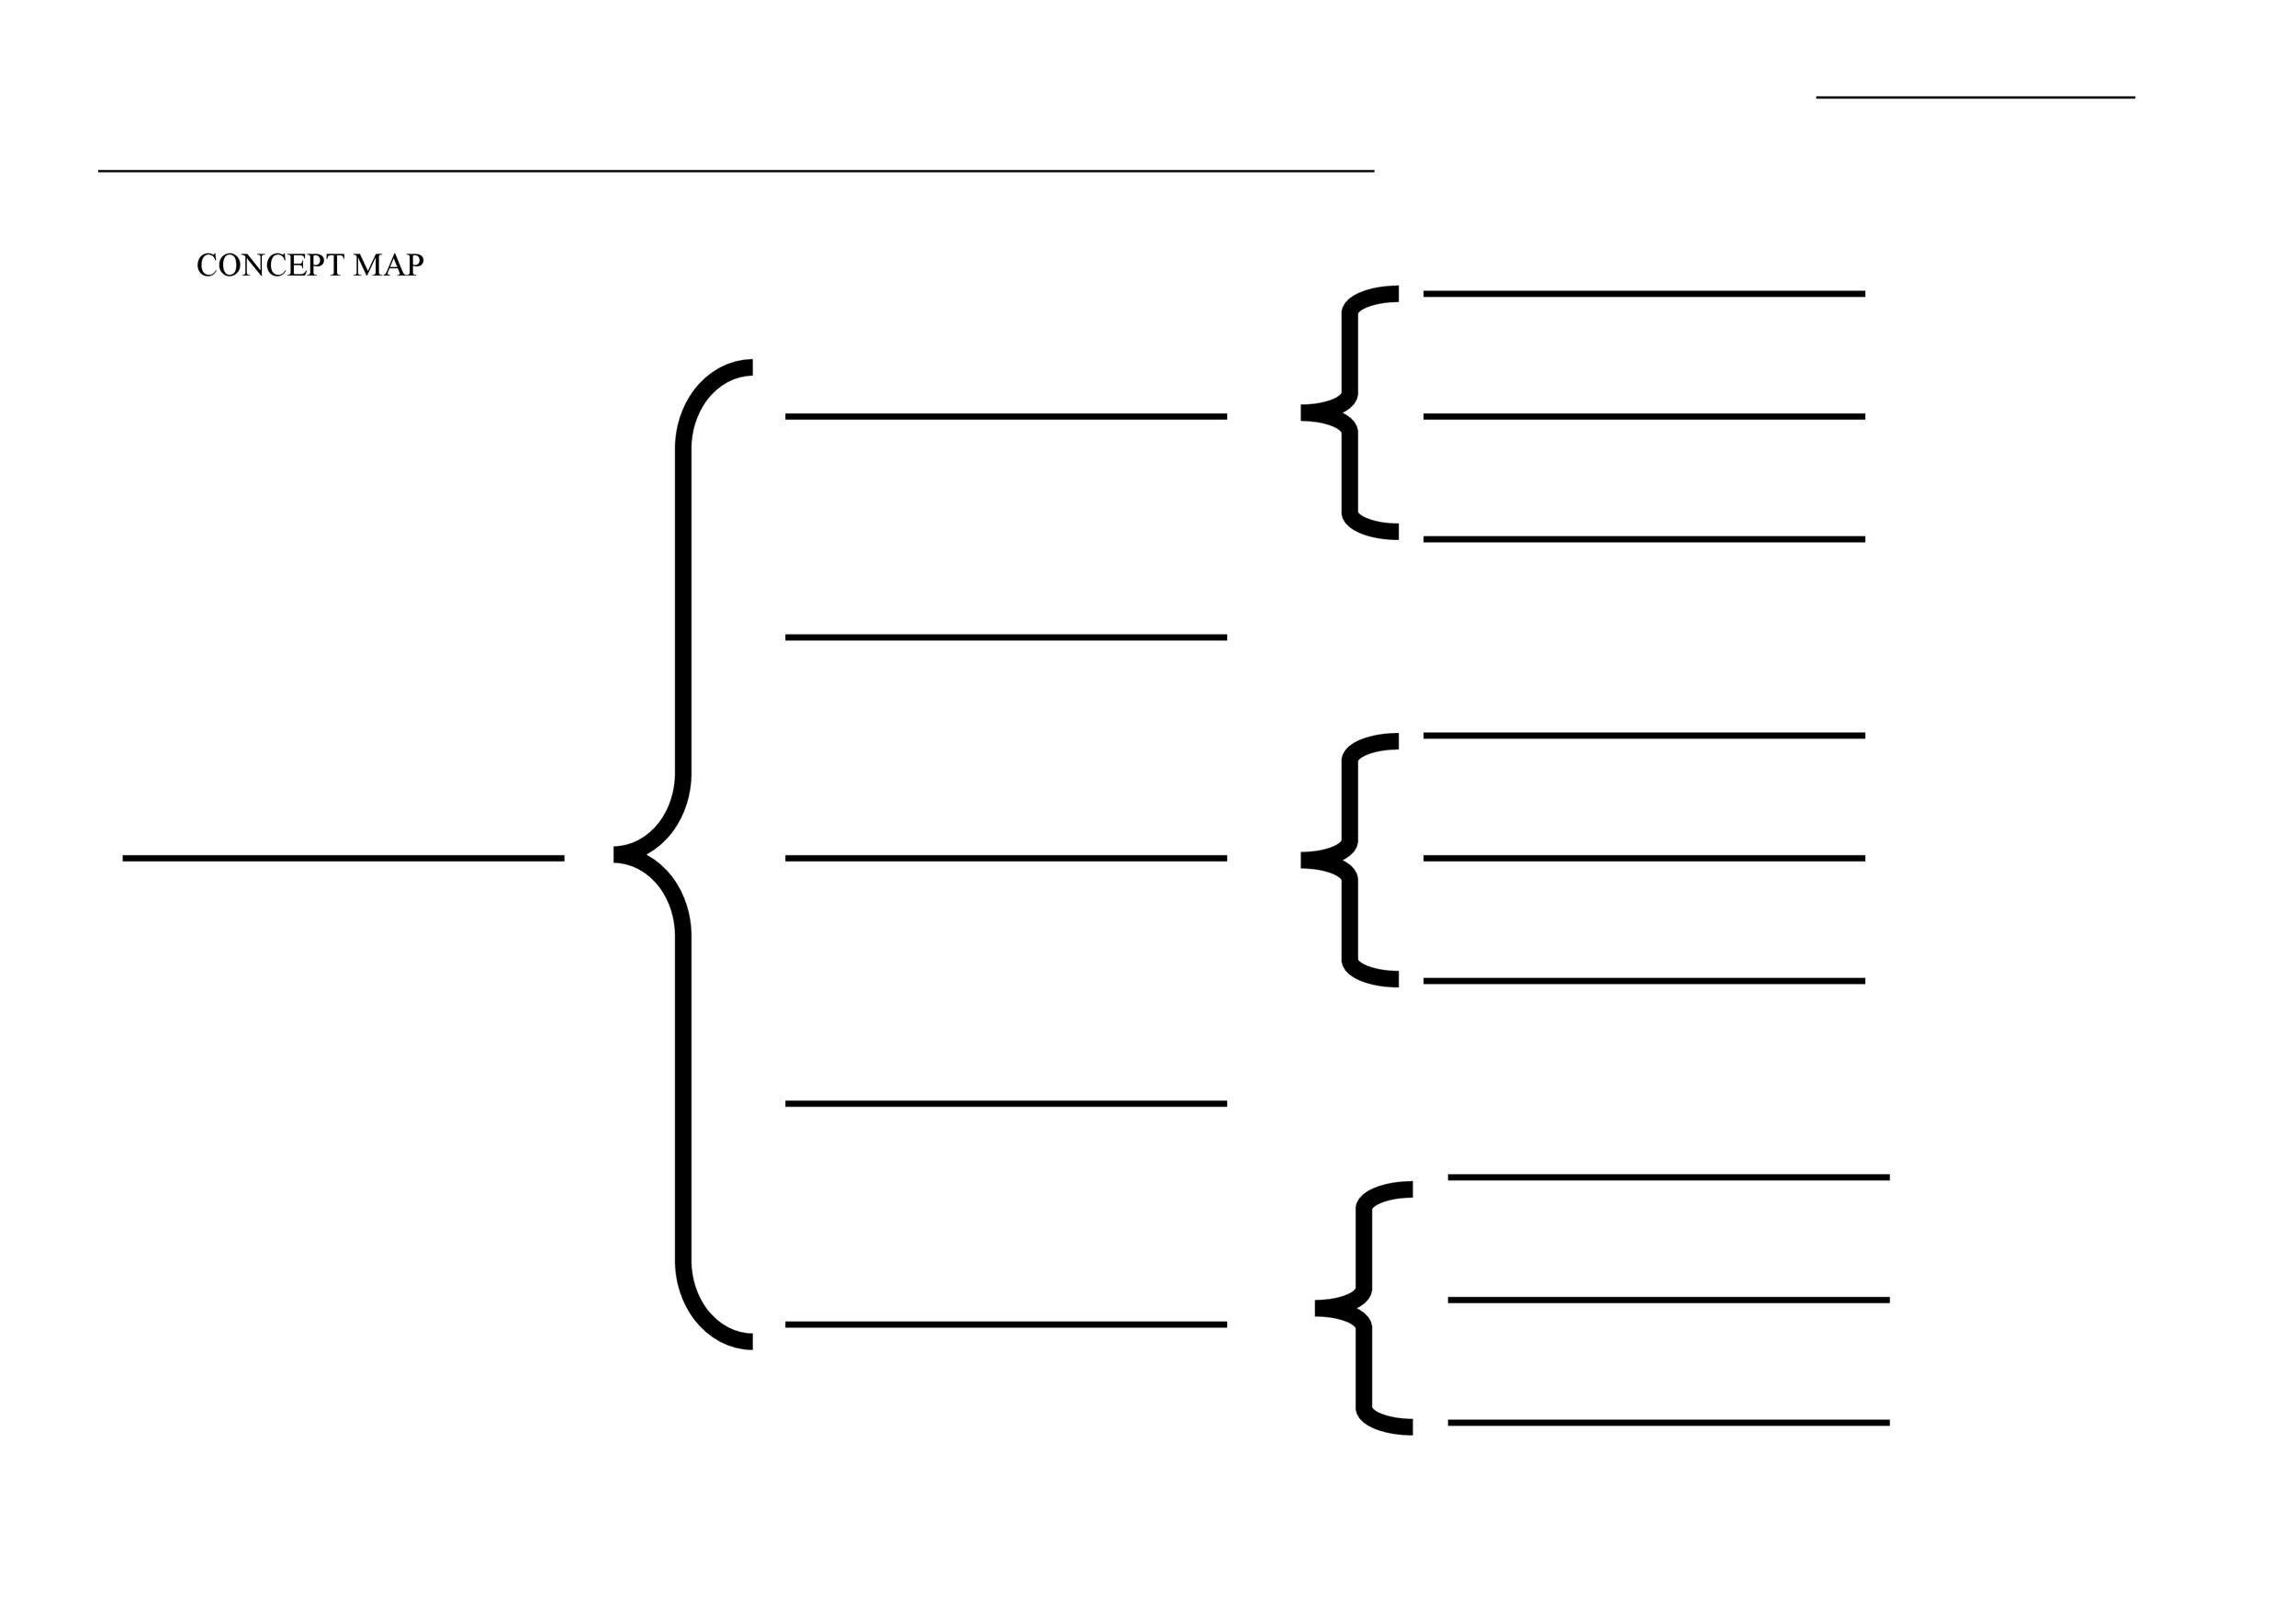 Free concept map template 09